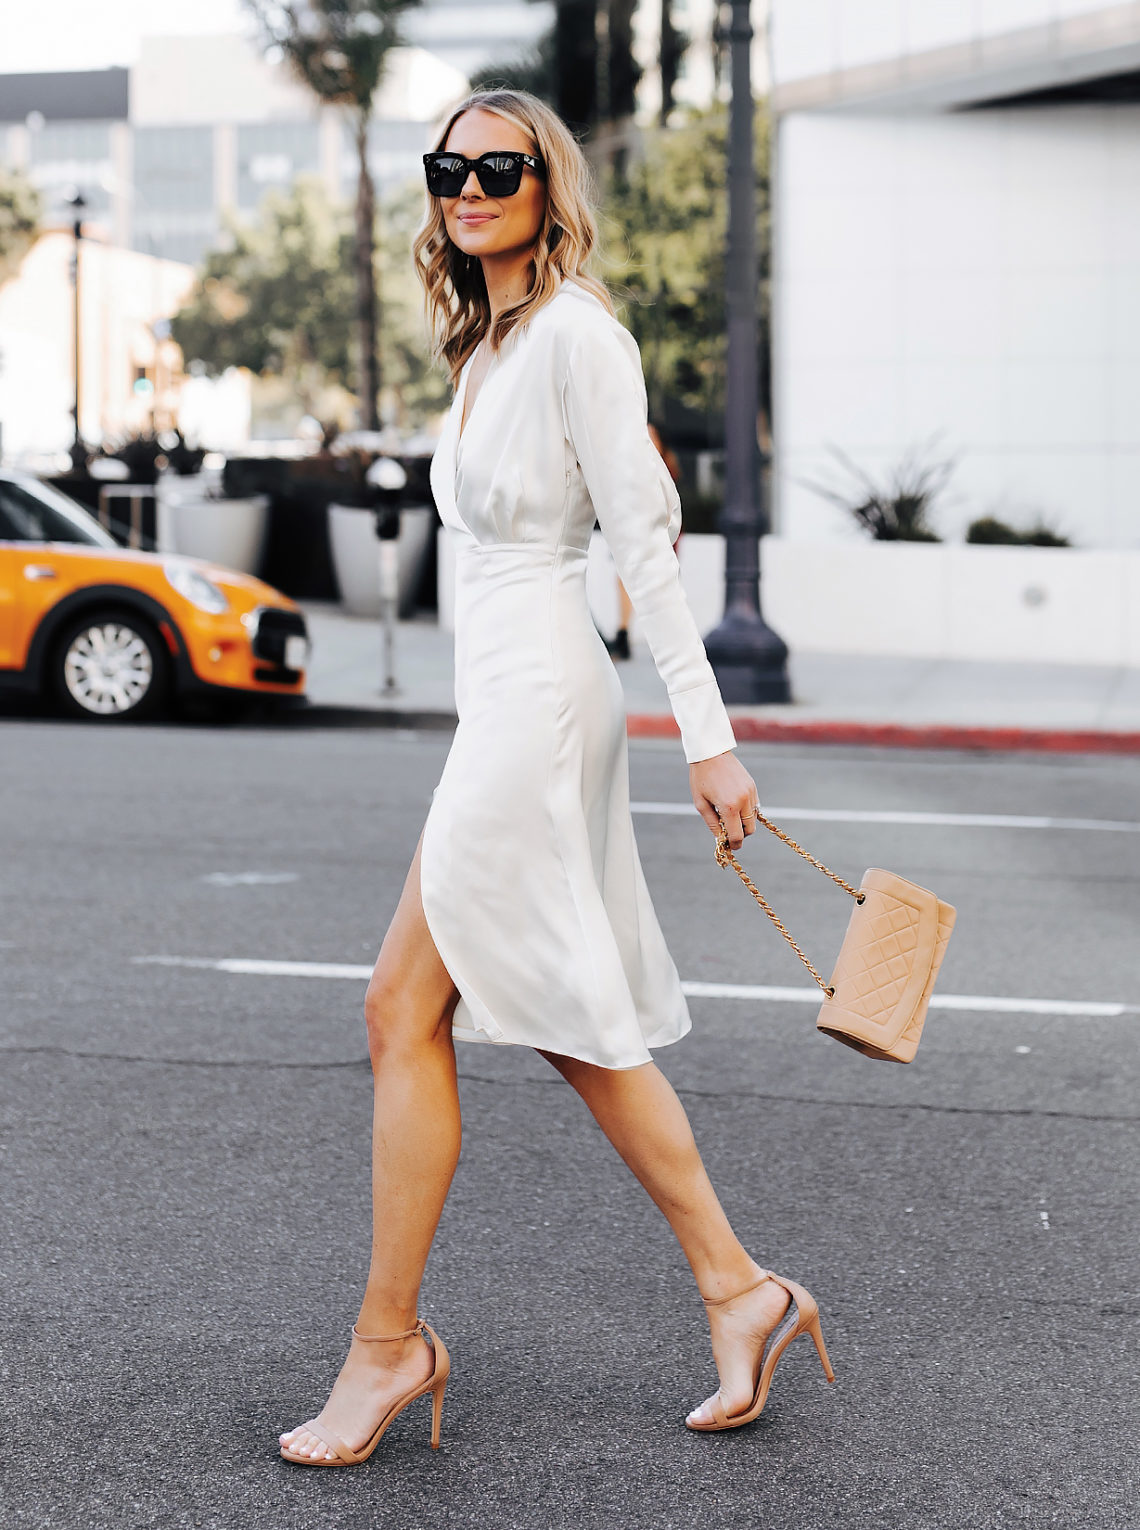 Fashion Jackson Wearing Tommy Hilfiger White Wrap Dress Chanel Beige Diana Handbag Nude Ankle Strap Heeled Sandals